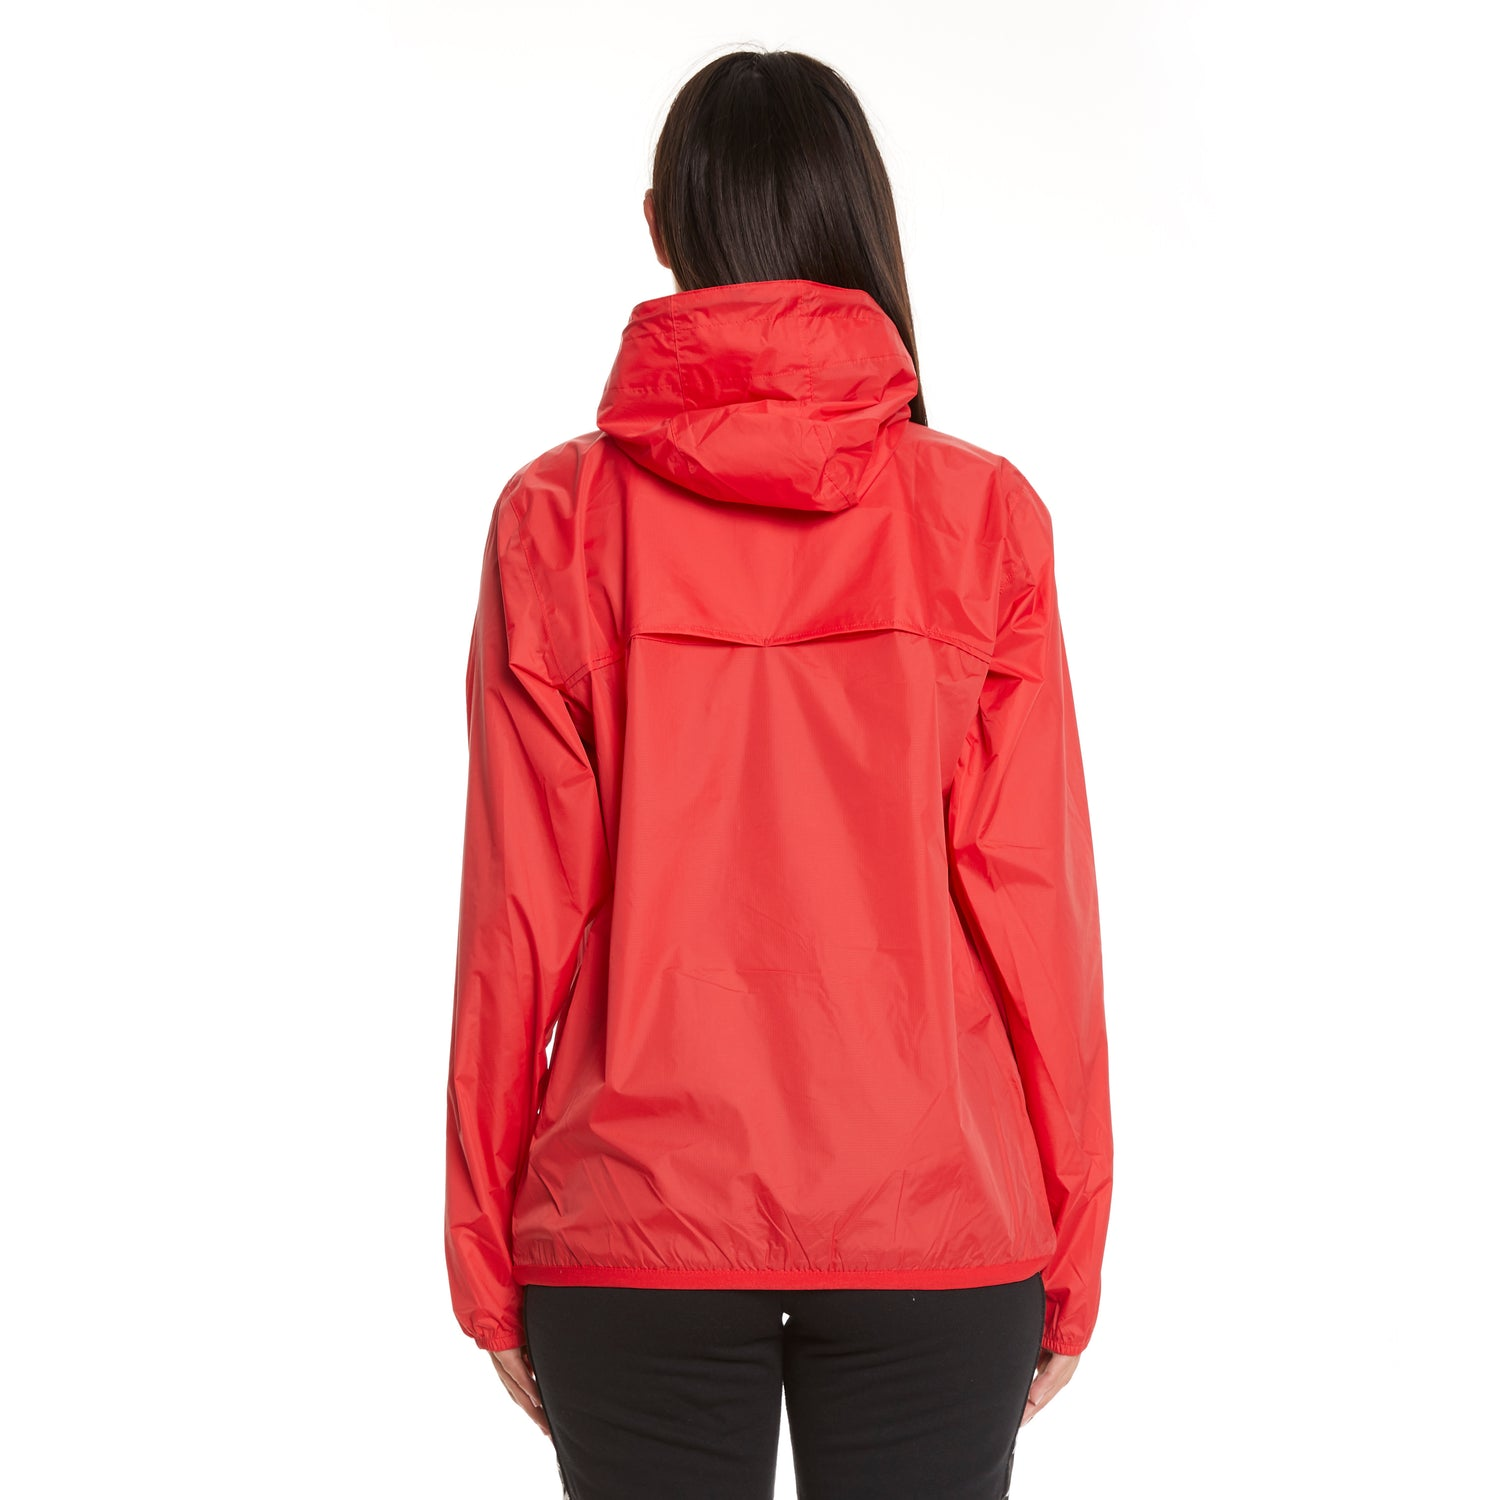 K-Way Women's Le Vrai 3.0 Leon Red